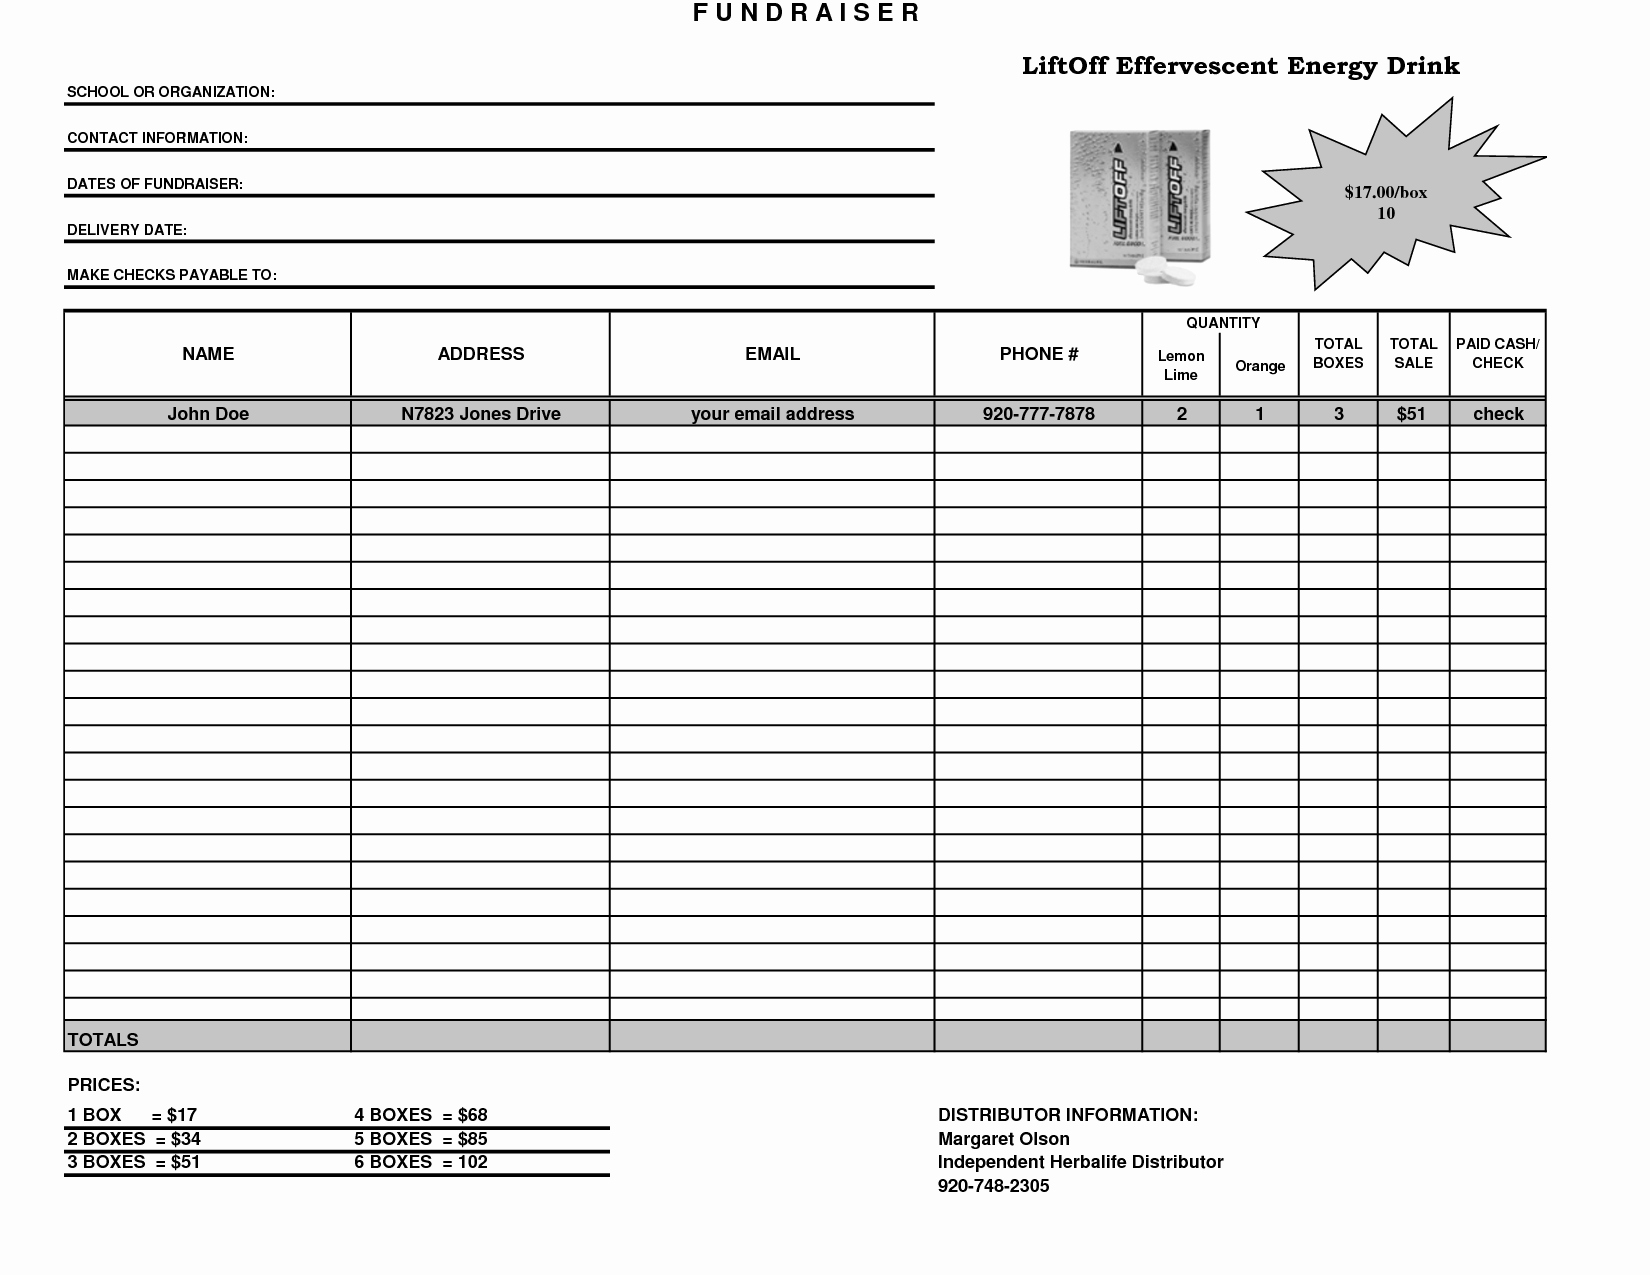 Fundraiser order form Template Inspirational Fundraiser Template Excel Fundraiser order form Template